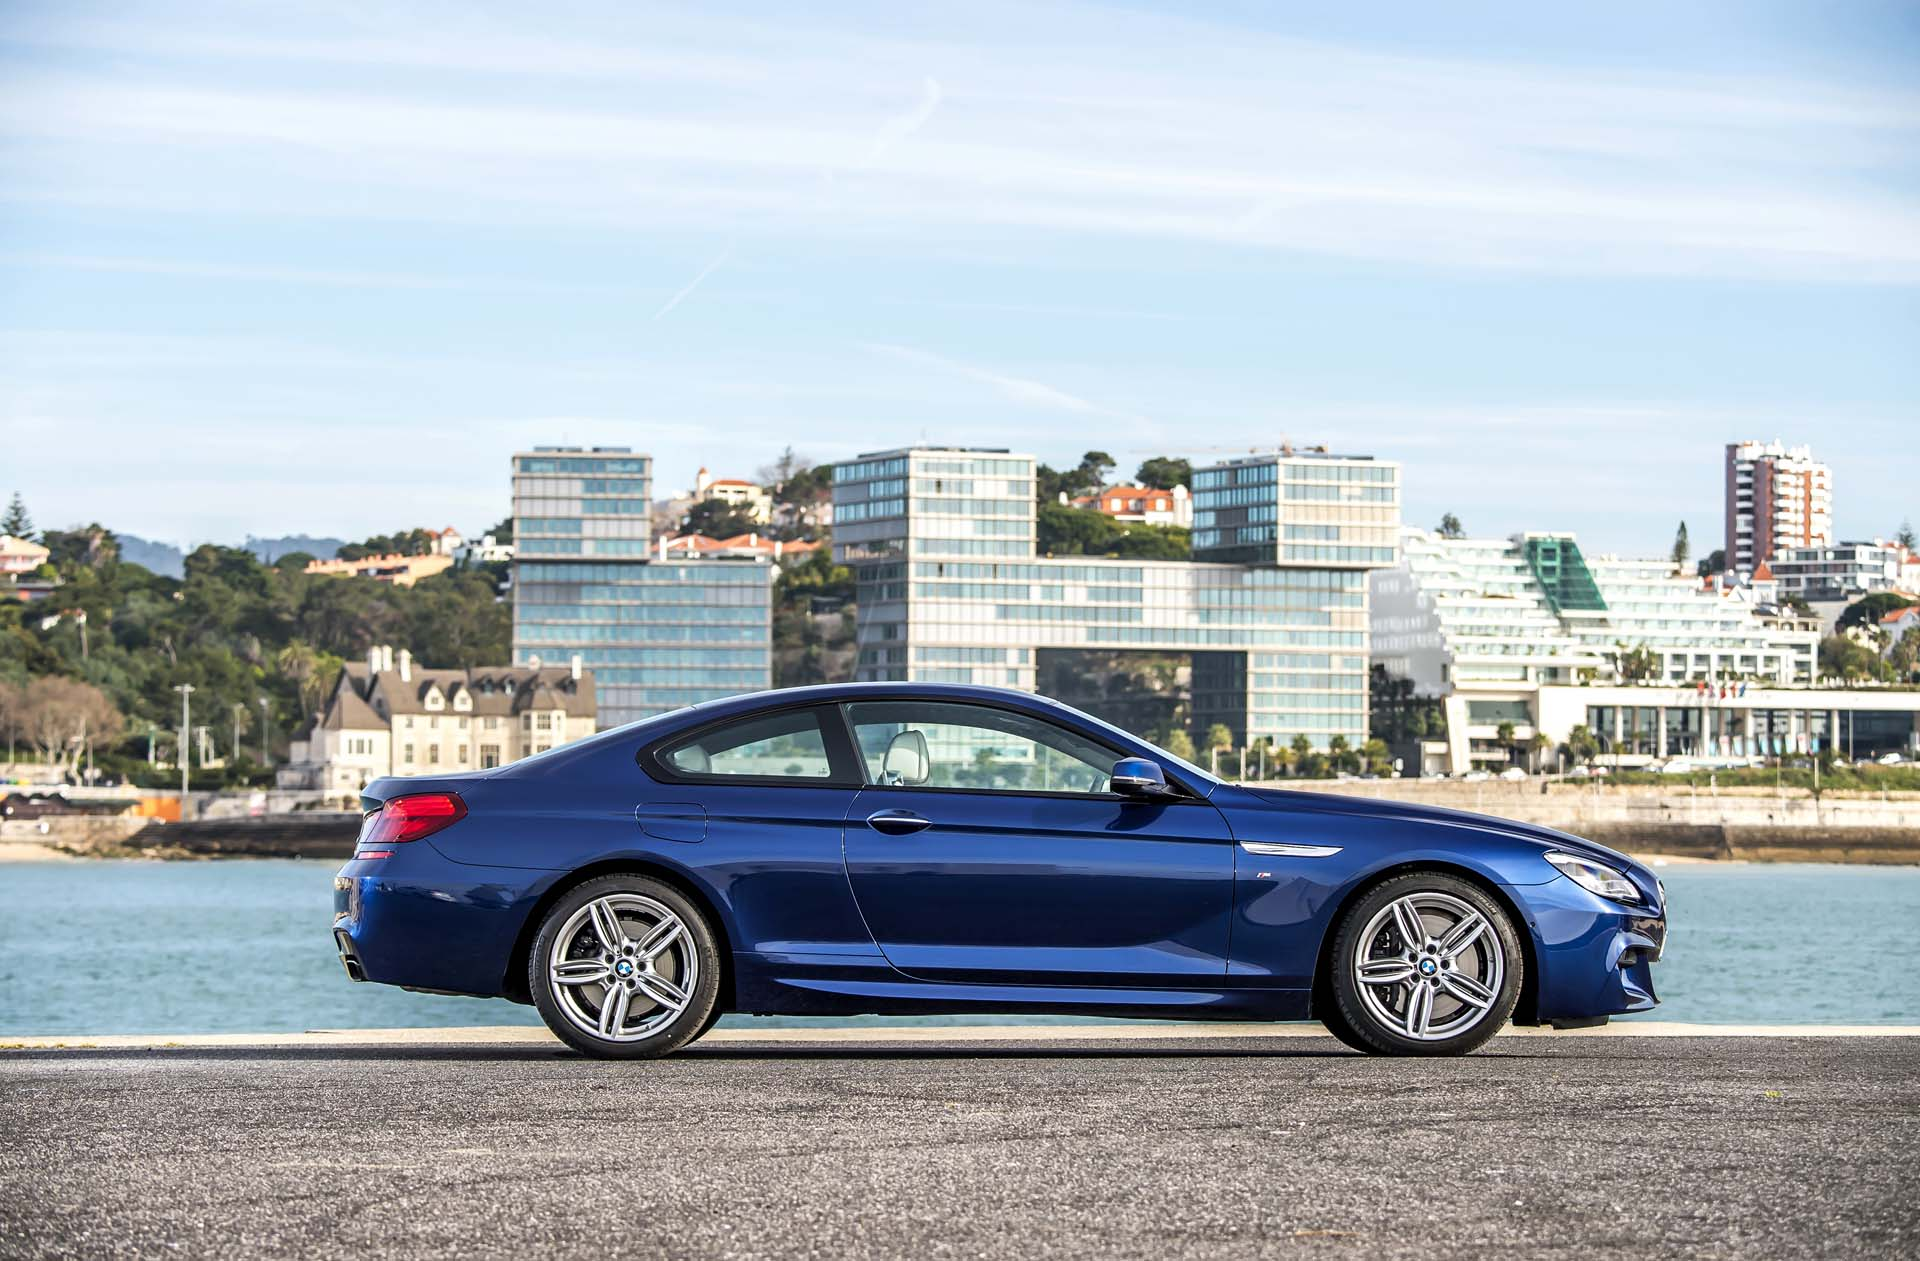 Honda Houston 2017 BMW 6-Series Features Review - The Car Connection